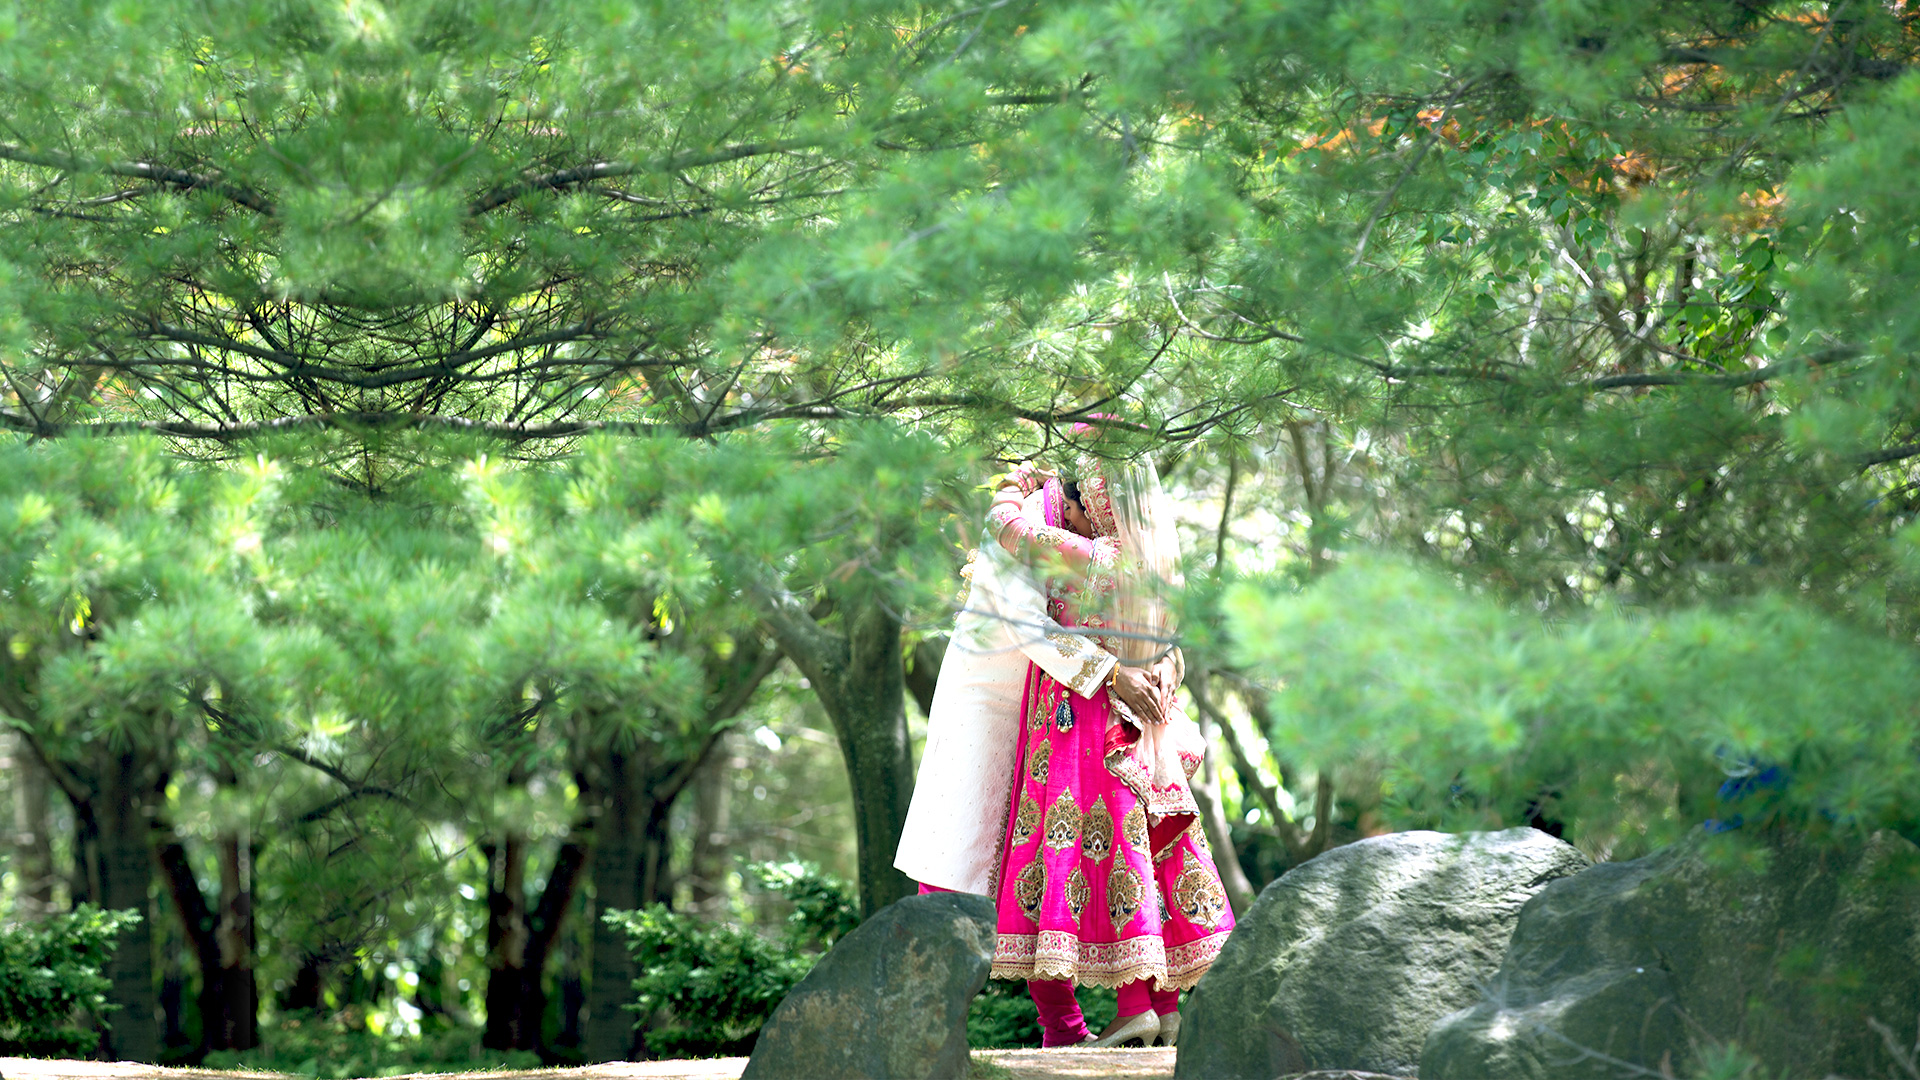 epic_sky_pictures_bridal_photo_photography_bride_candid_wedding_trees_kissing_just_married